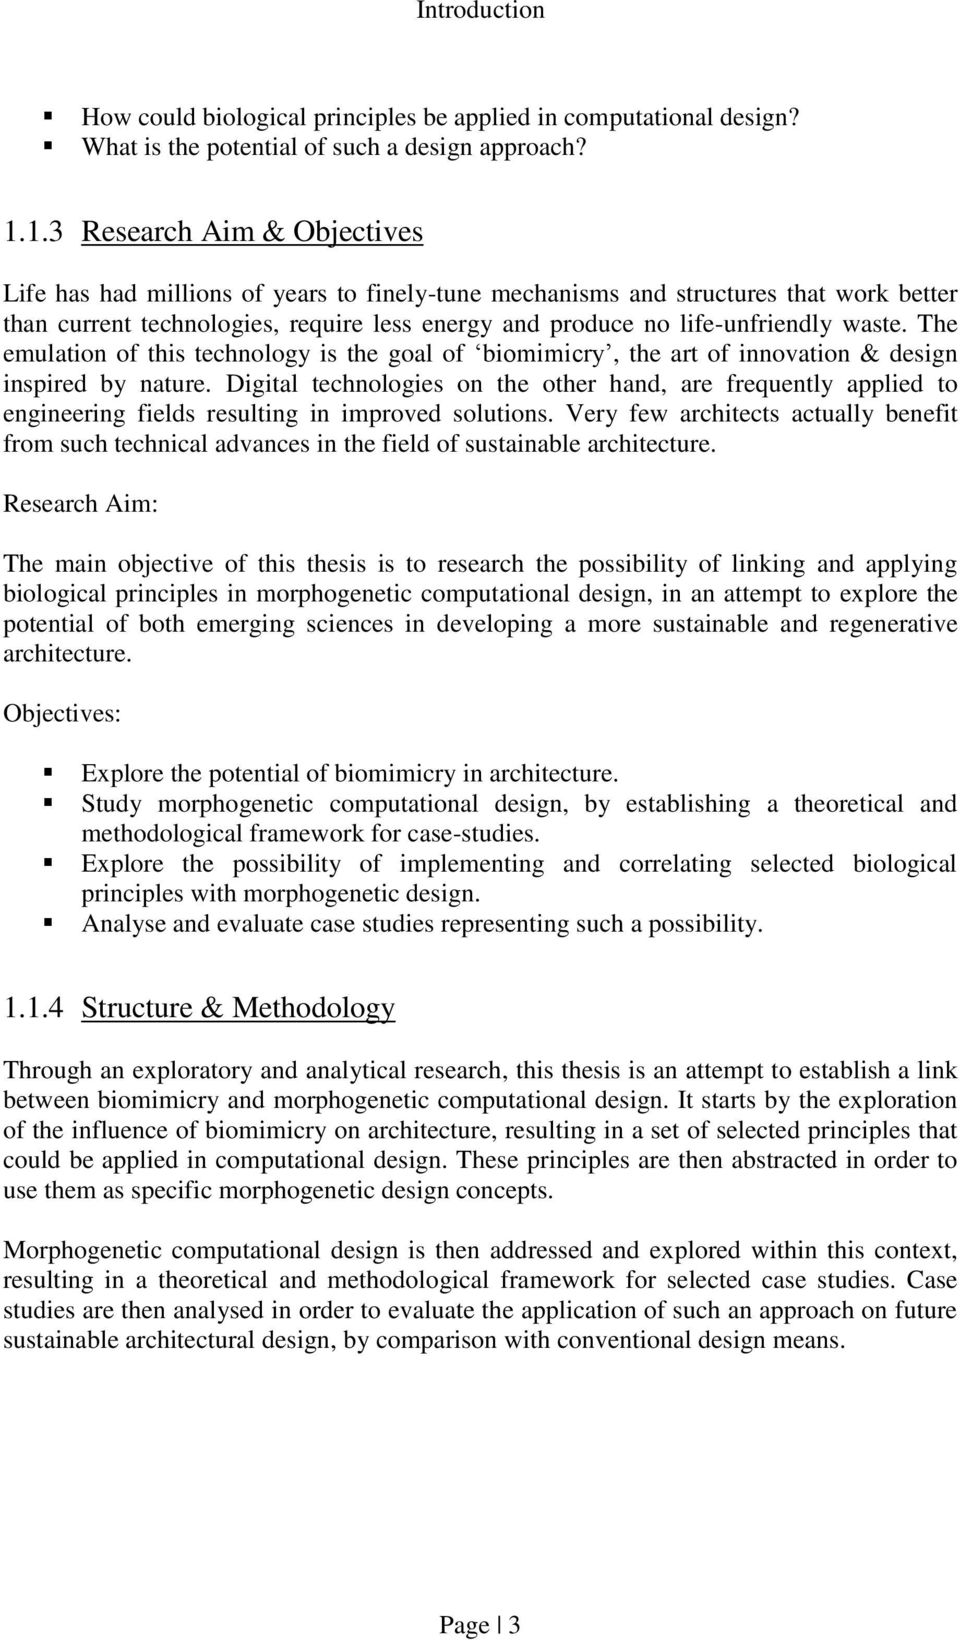 BIOMIMICRY AS A TOOL FOR SUSTAINABLE ARCHITECTURAL DESIGN A